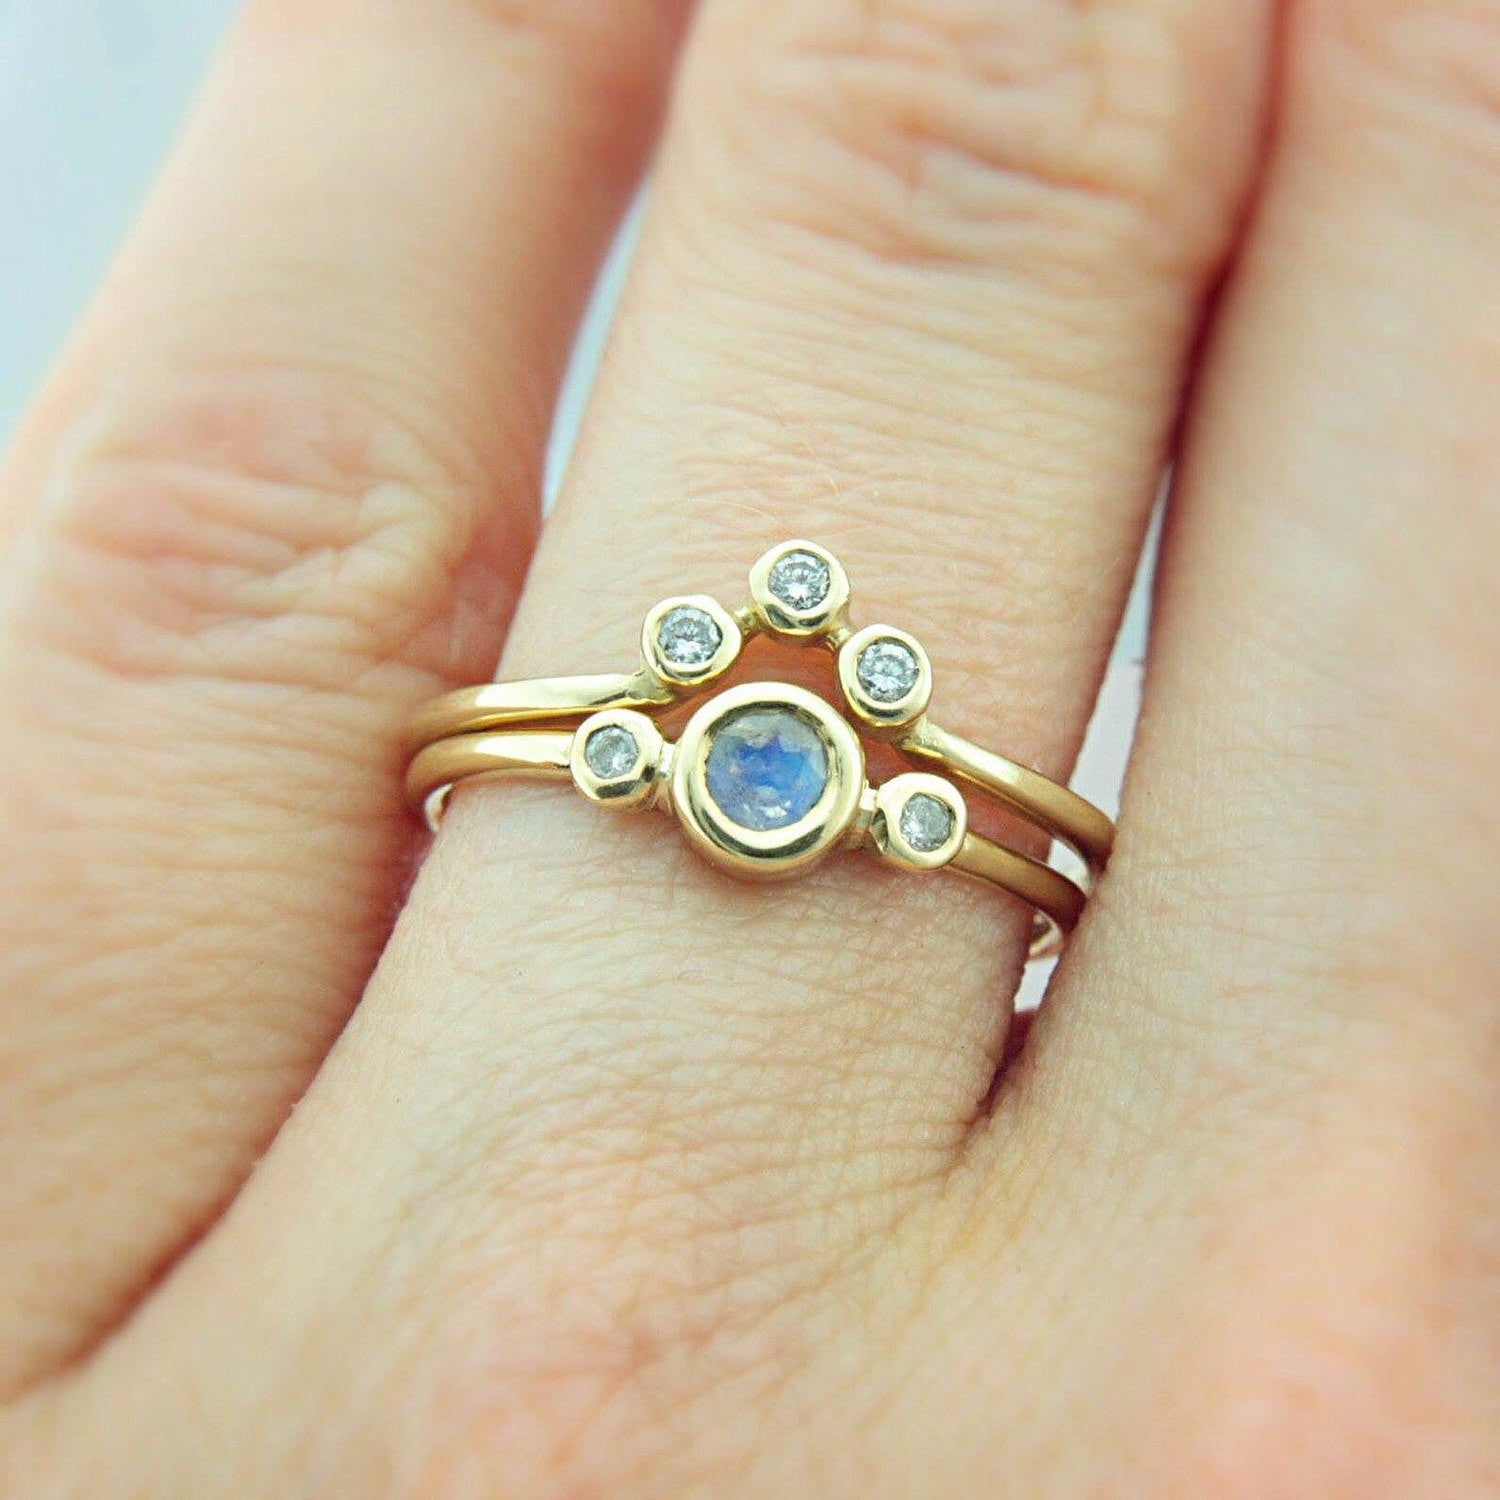 Moonstone and Diamond Wedding Set 14k Gold Triple Ring Set - Manari.eu